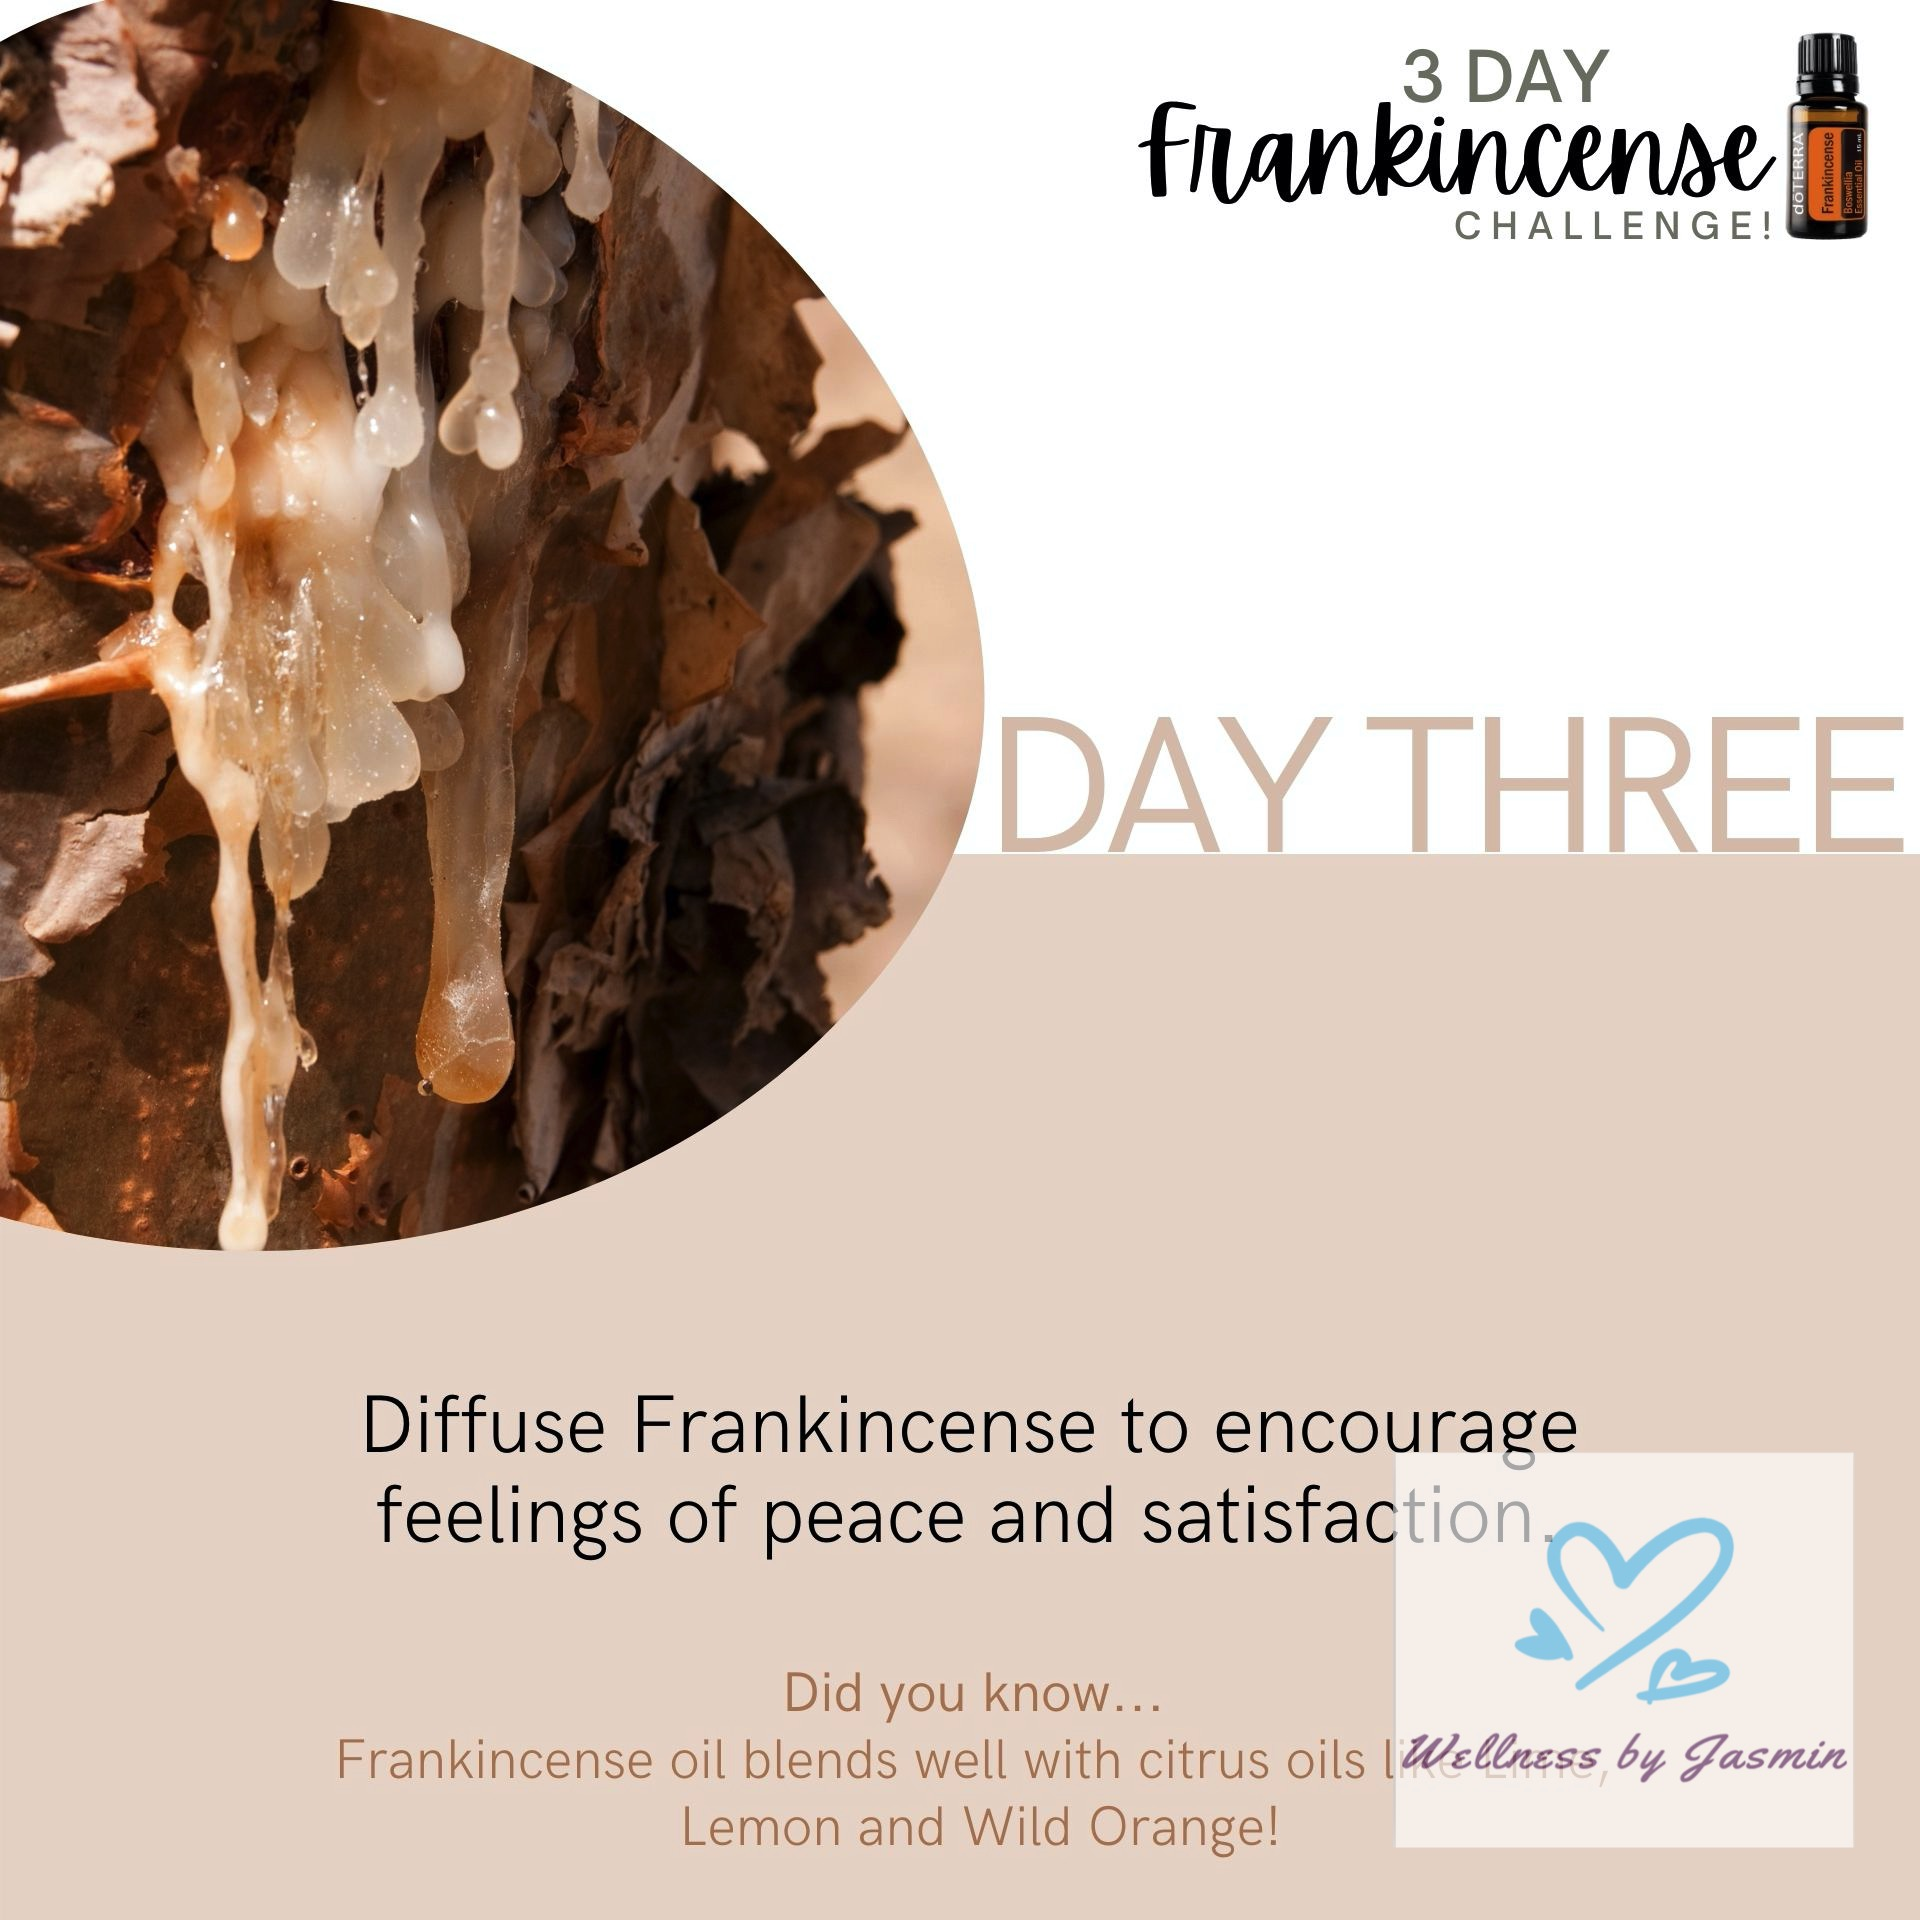 Read about using Frankincense for peace